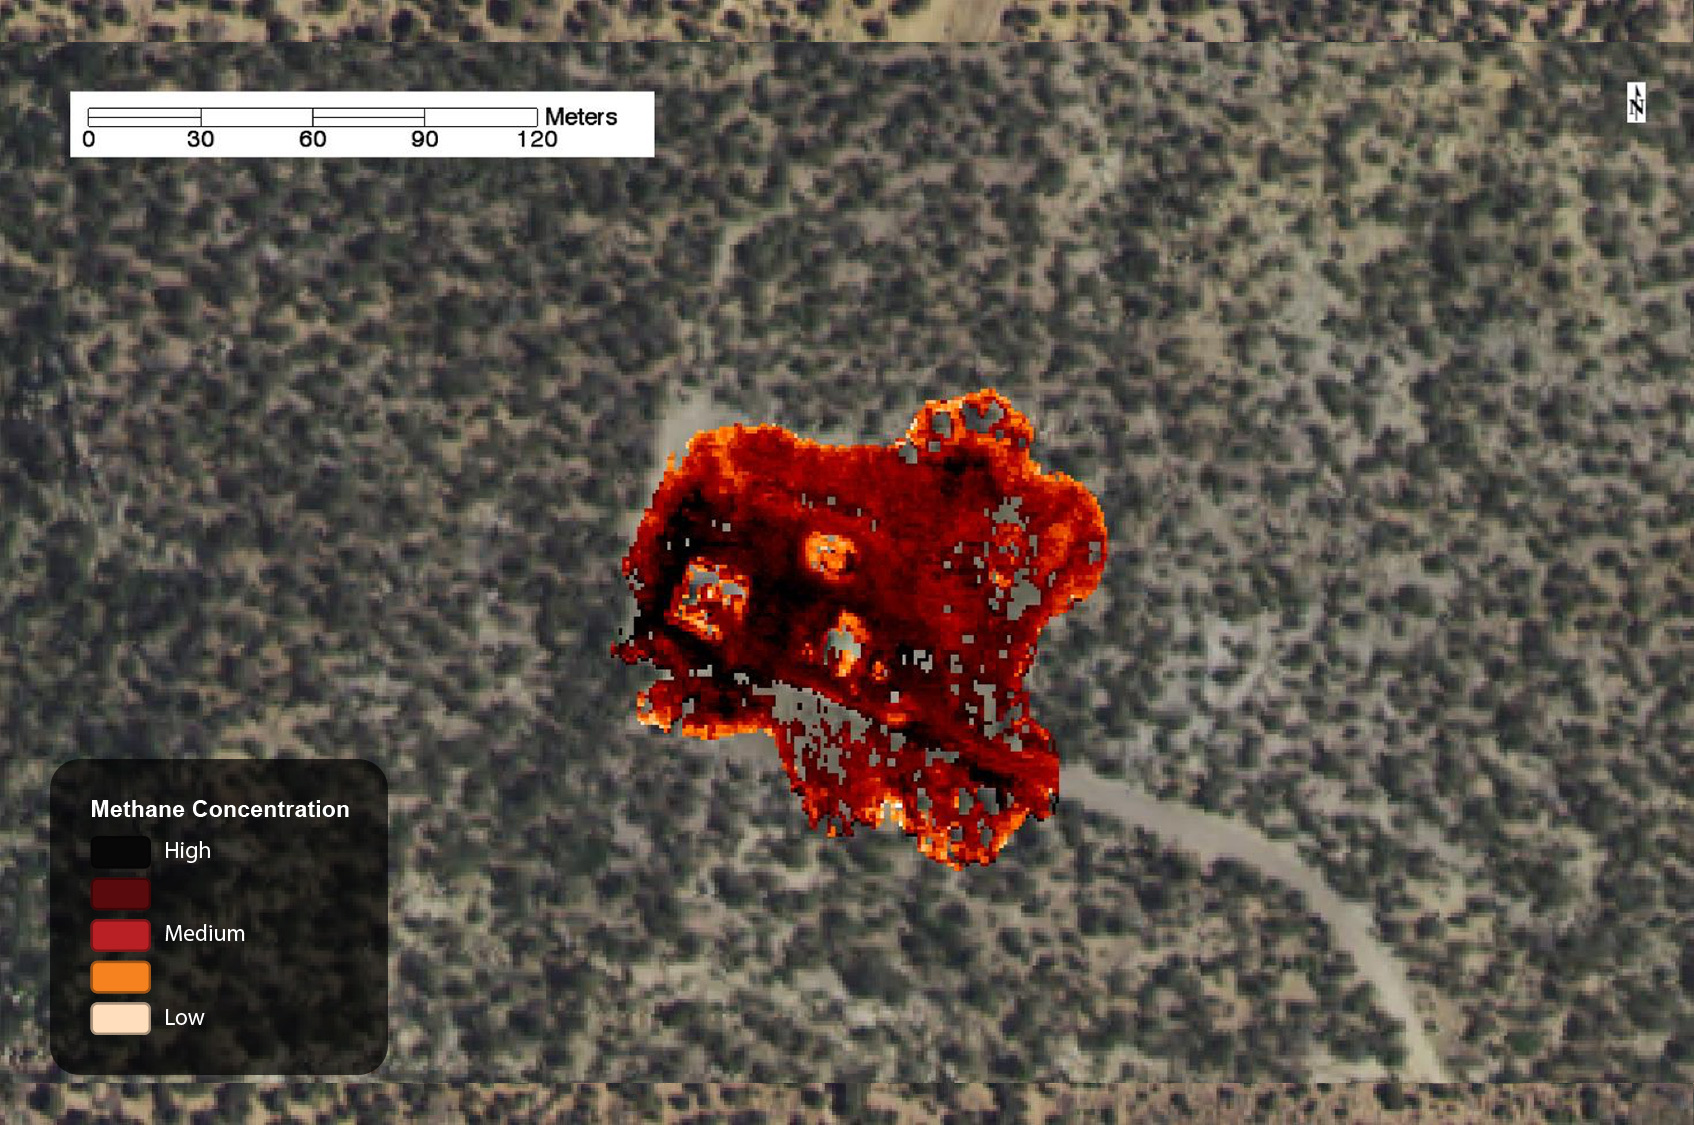 Methane leak on well pad, captured by AVIRIS in 2015.